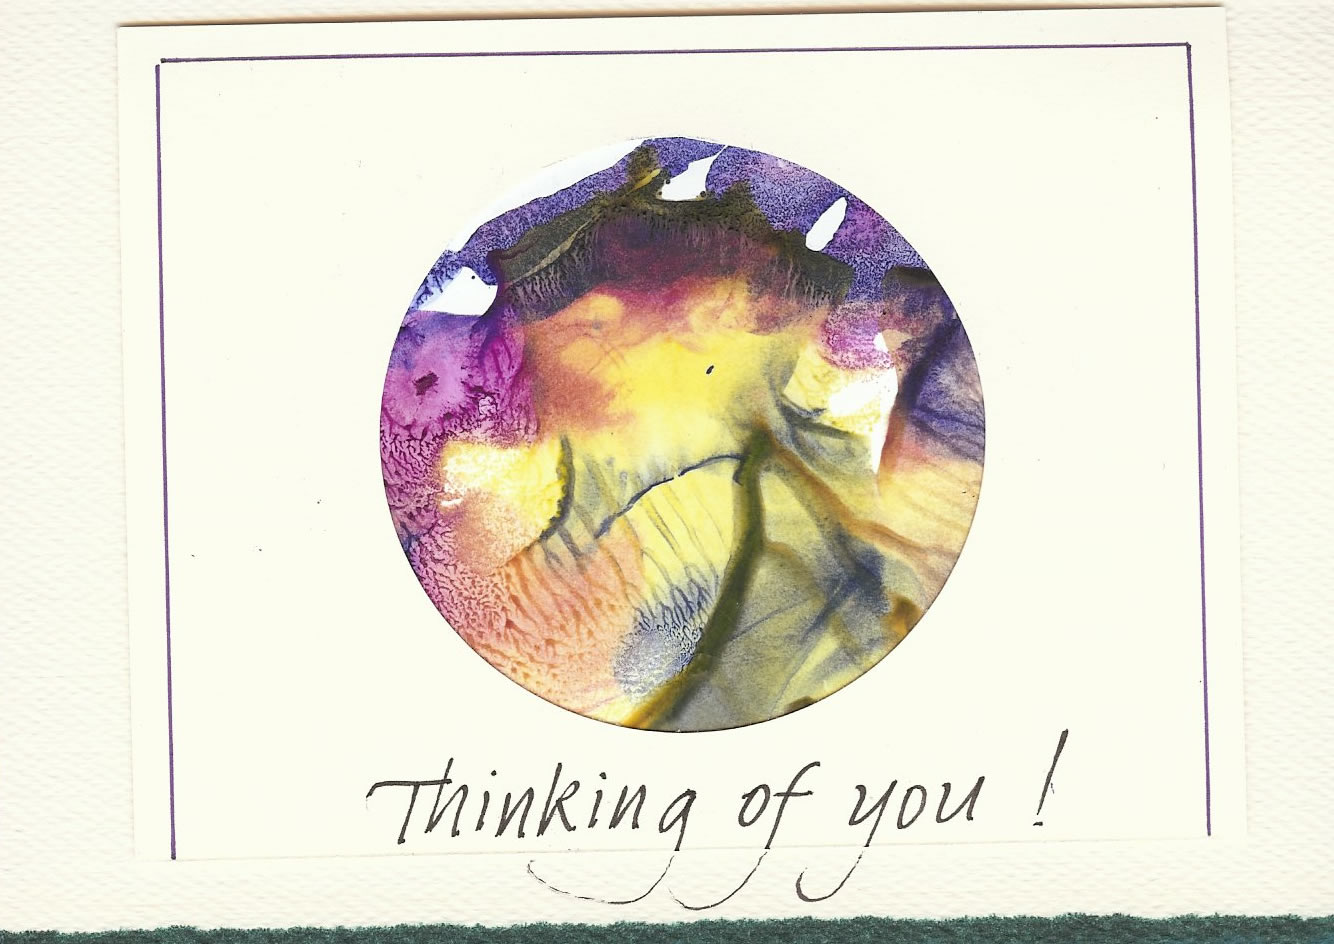 Mary Friesen & Pat Williams (thinking of you card)